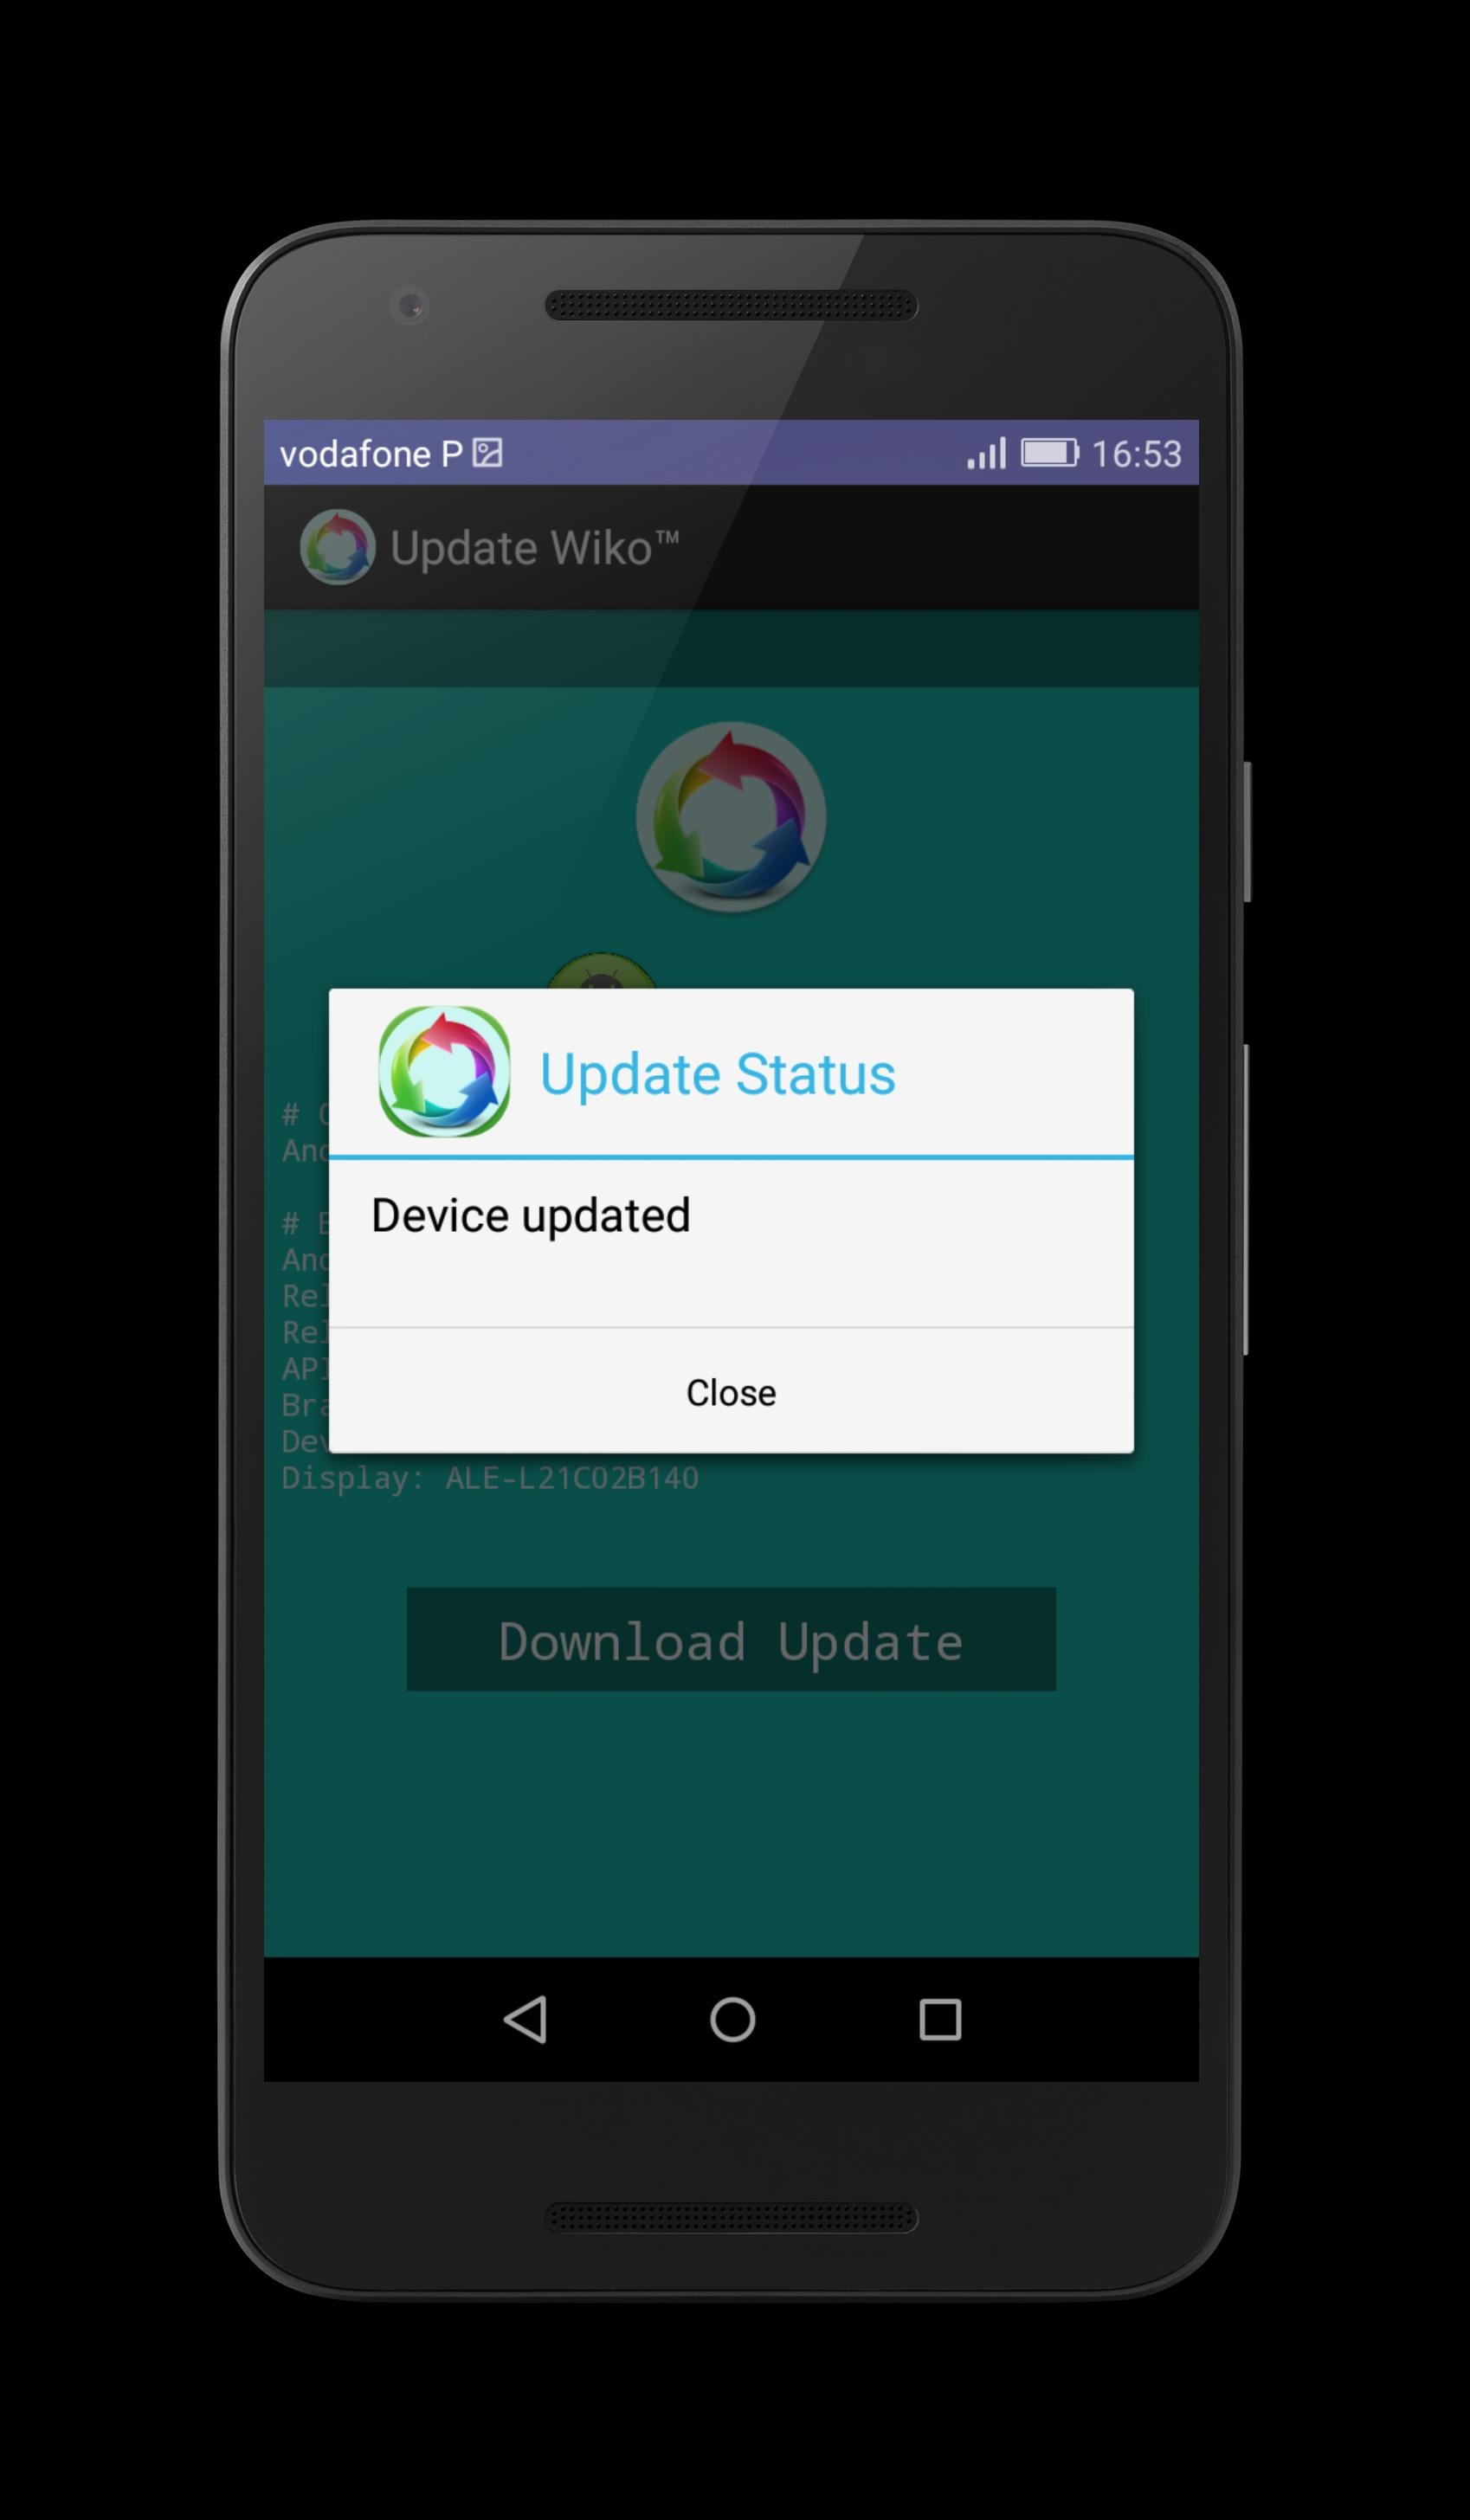 Update Wiko™ for Android™ for Android - APK Download